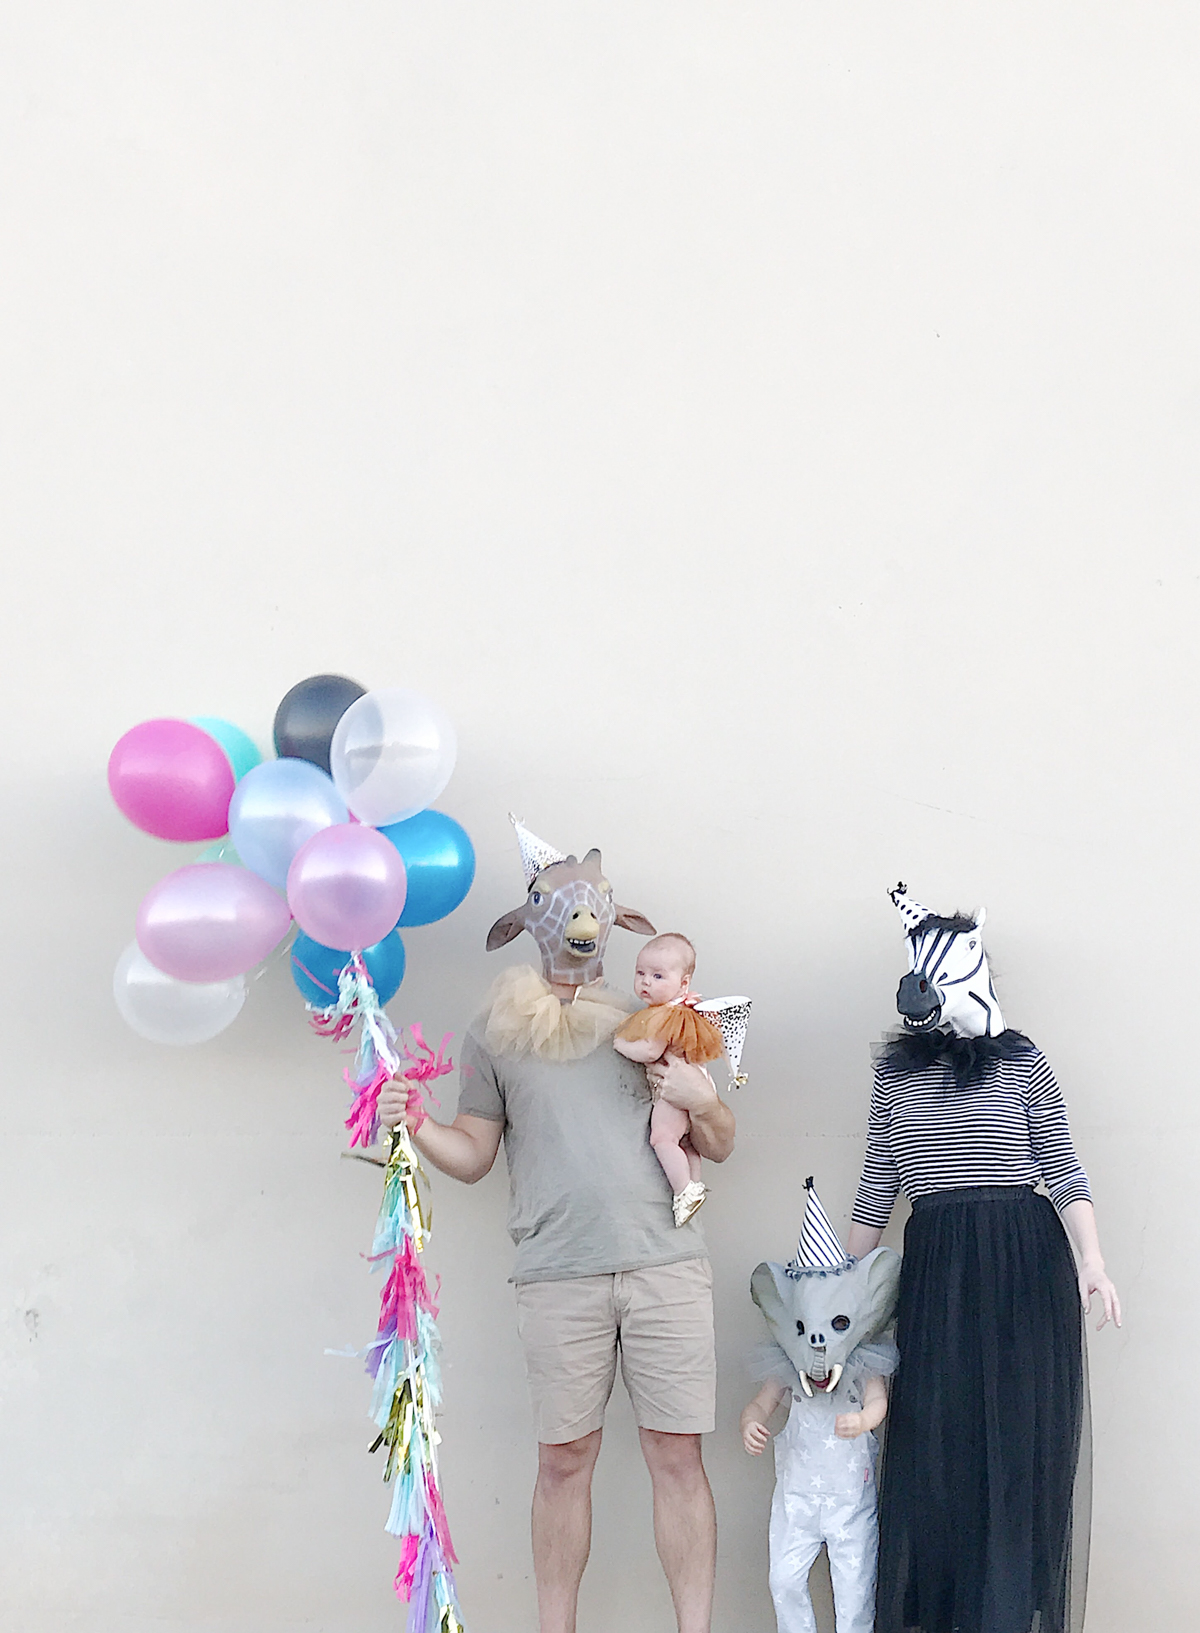 10 Adorably Awesome Halloween Costumes for Family, Kids, and Babies, including these Easy DIY Family Party Animals - Circus Theme. Click through for plenty of fun DIY costumes for families. #halloween #halloweencostumeideas #familyhalloweencostume #familyhalloweencostumeideas | glitterinc.com | @glitterinc